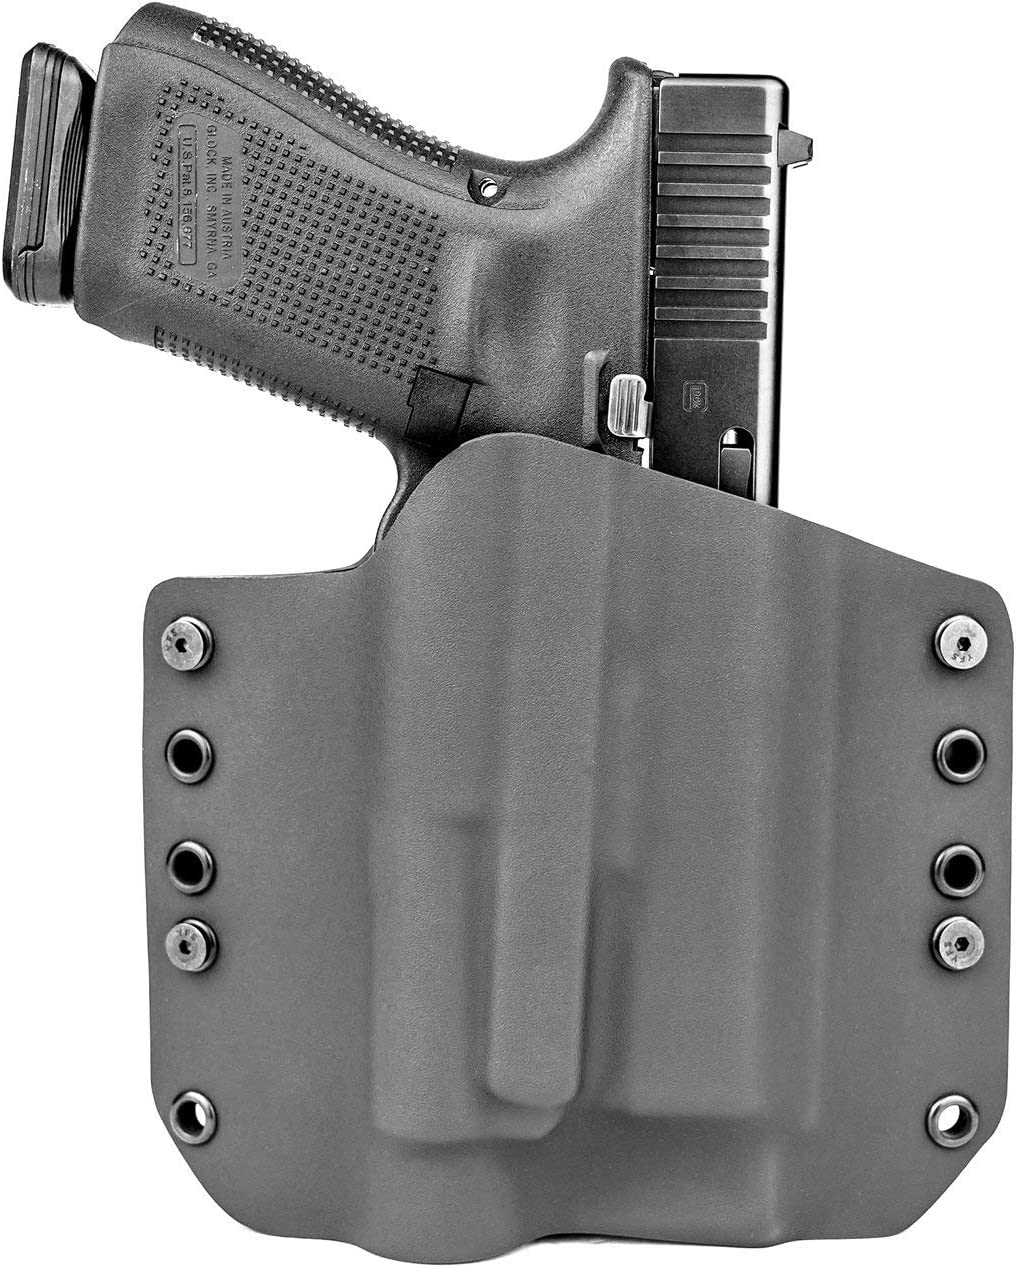 FLAT DARK EARTH OWB Kydex Holster for Hanguns with Crimson Trace CMR 208 FDE